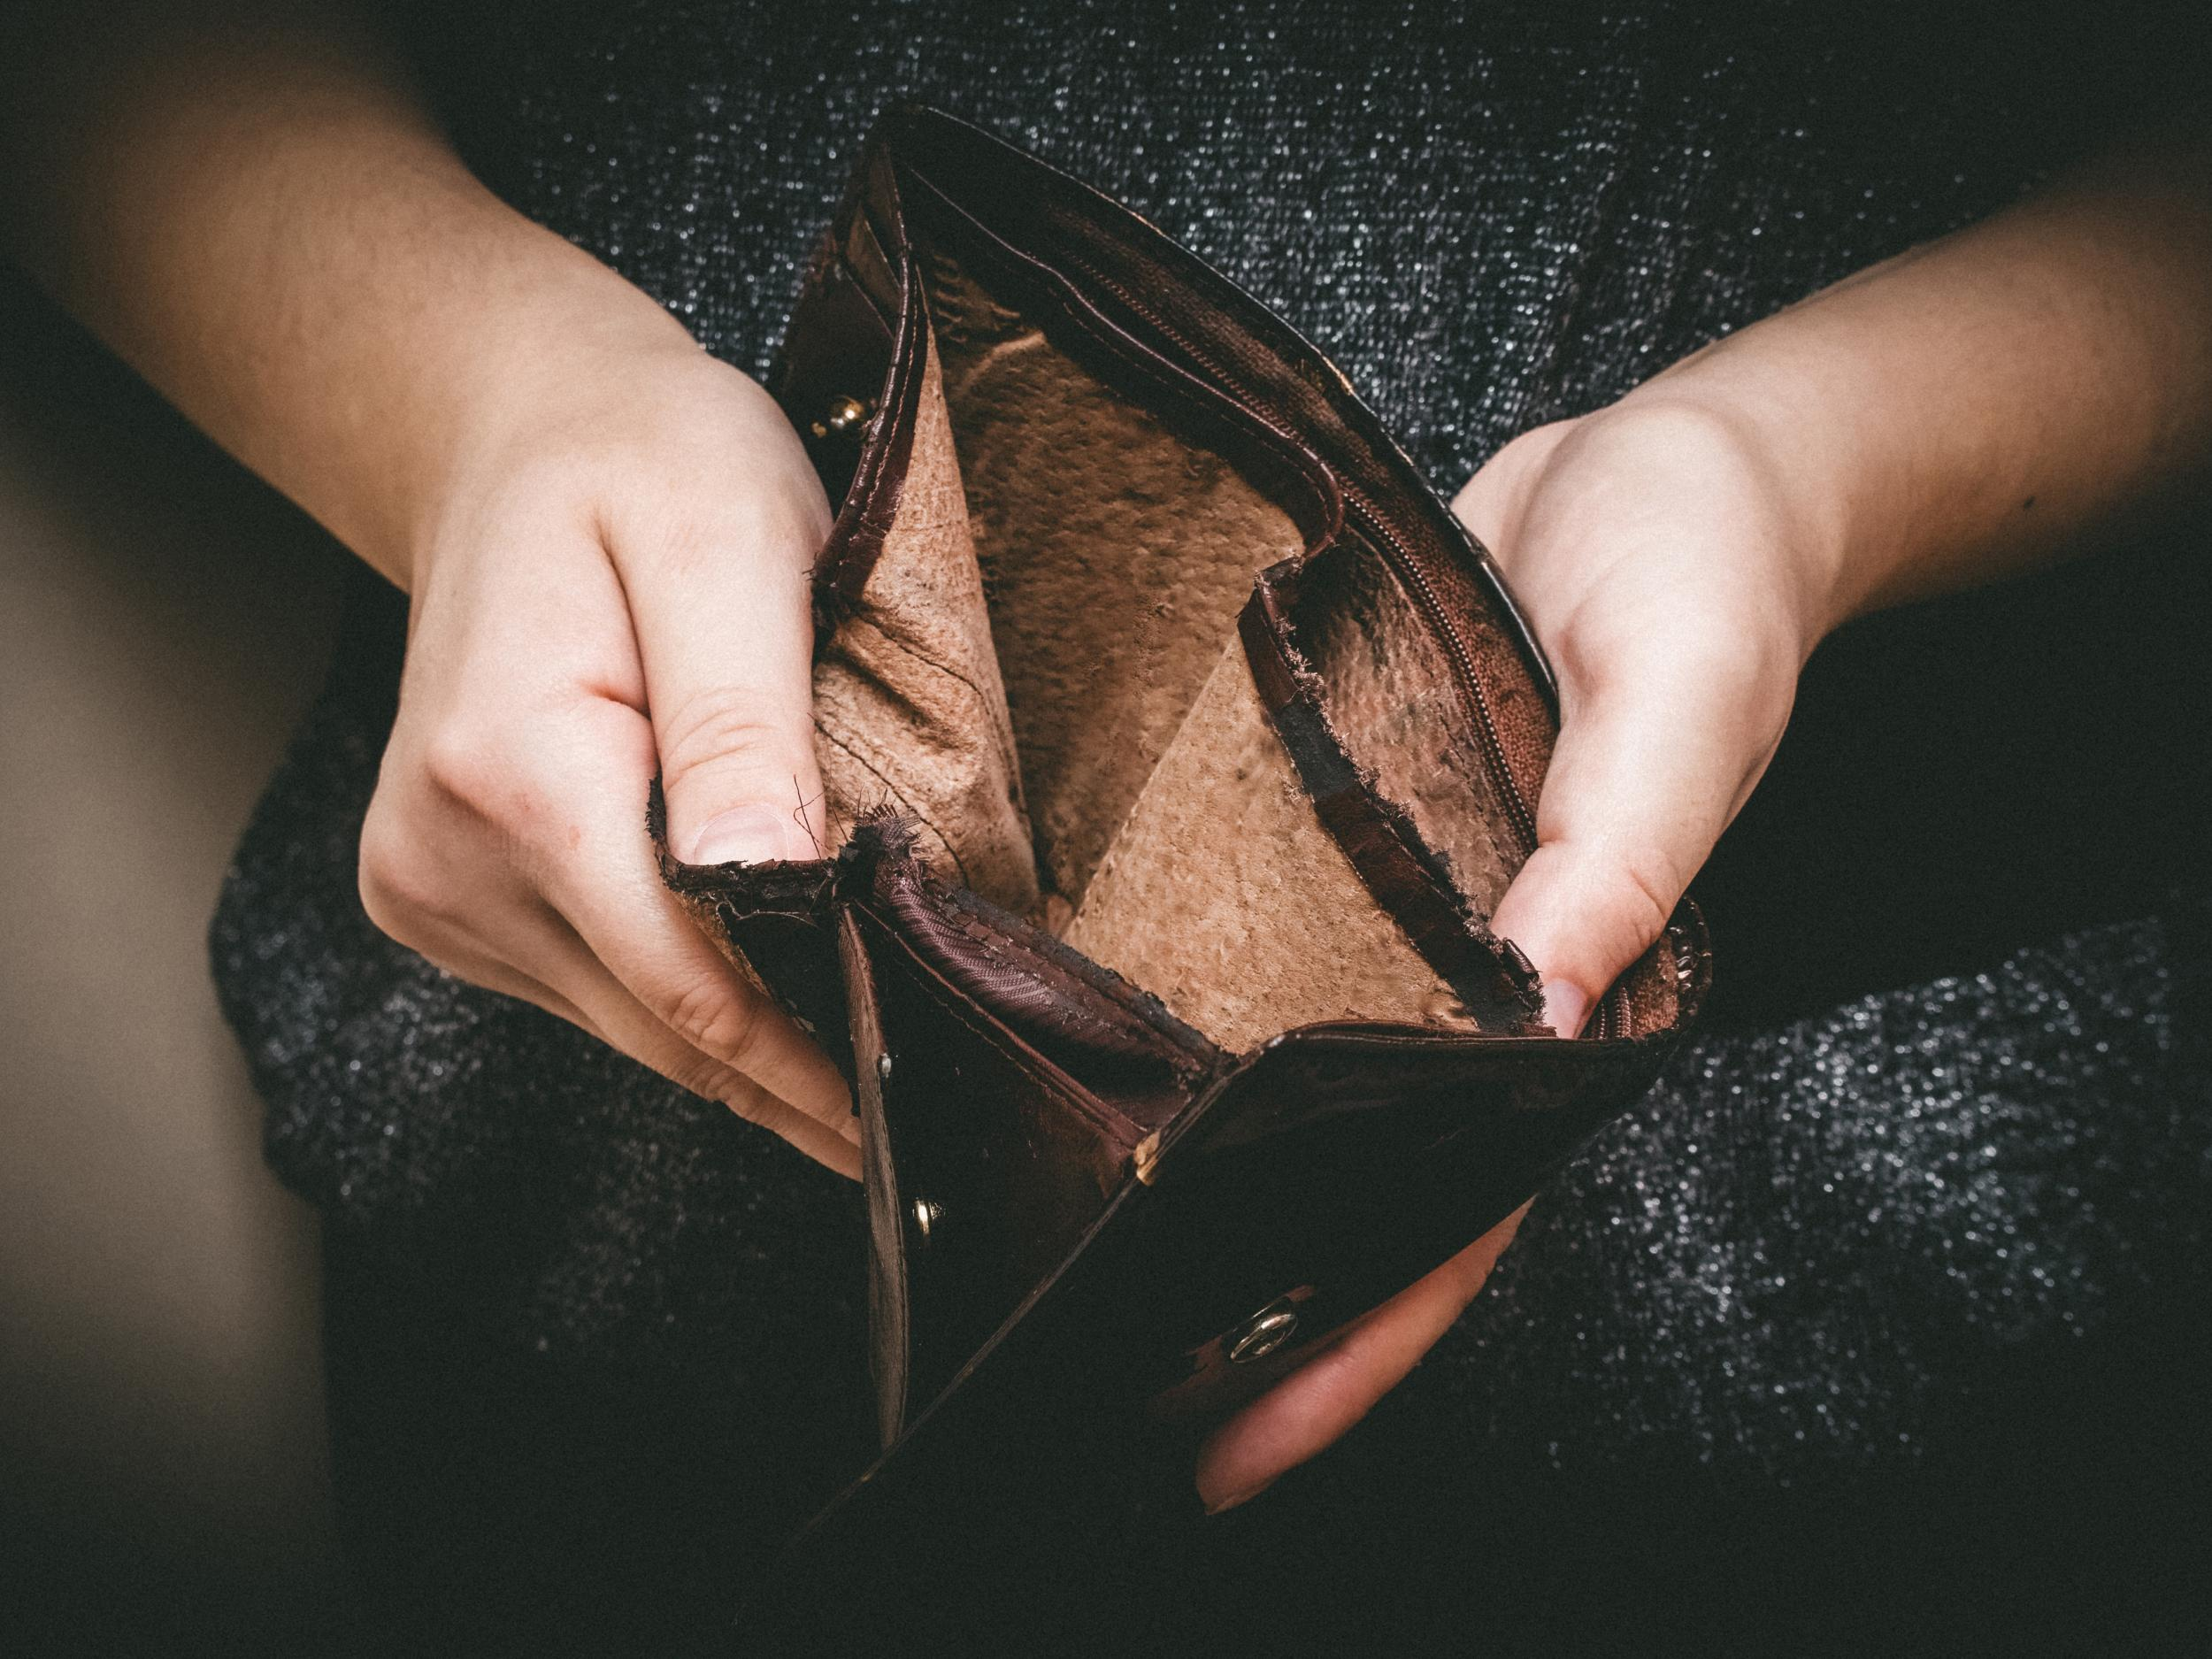 One in four adults lie about how much money they have, survey claims